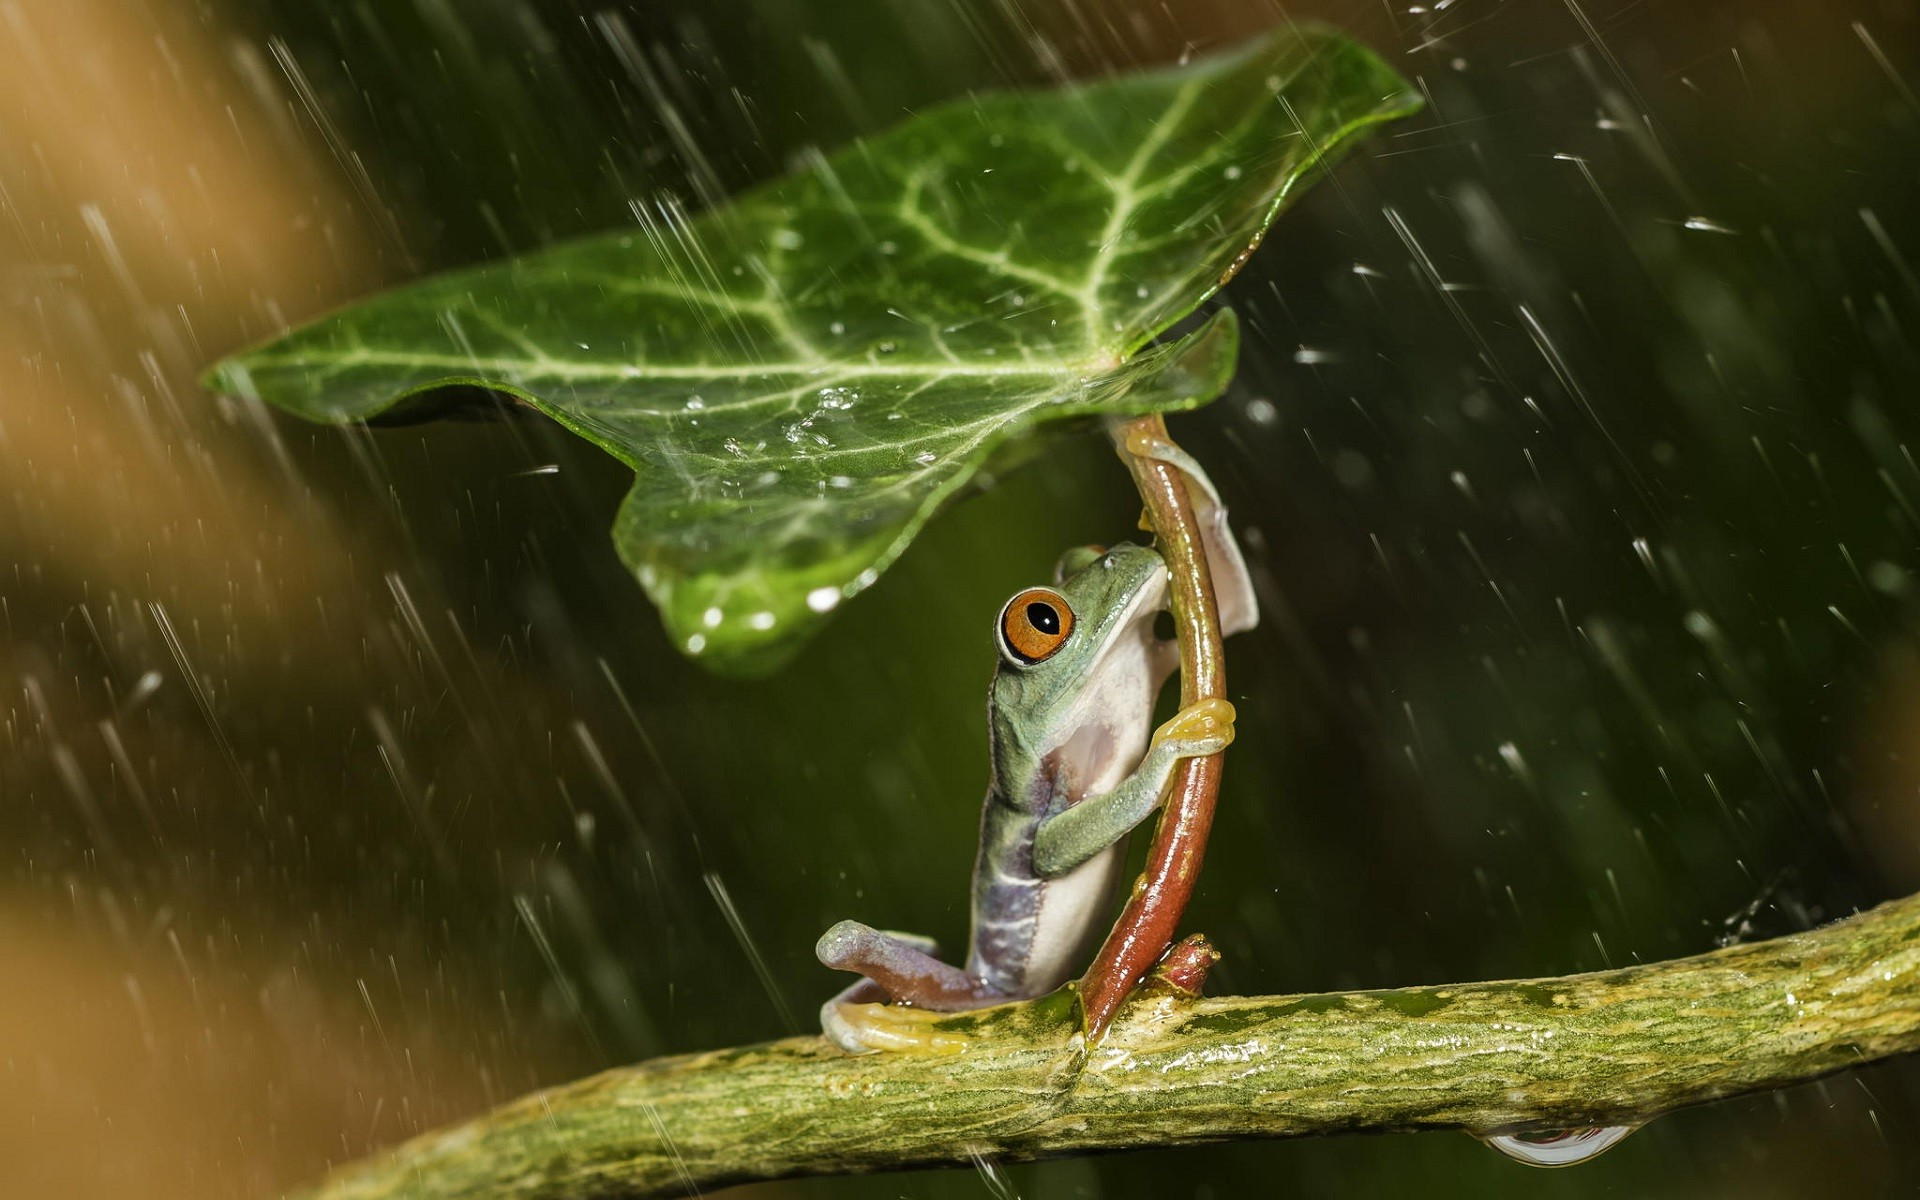 Anime Girl With Umbrellas In Rain Wallpaper Nature Animals Frog Leaves Plants Rain Water Water